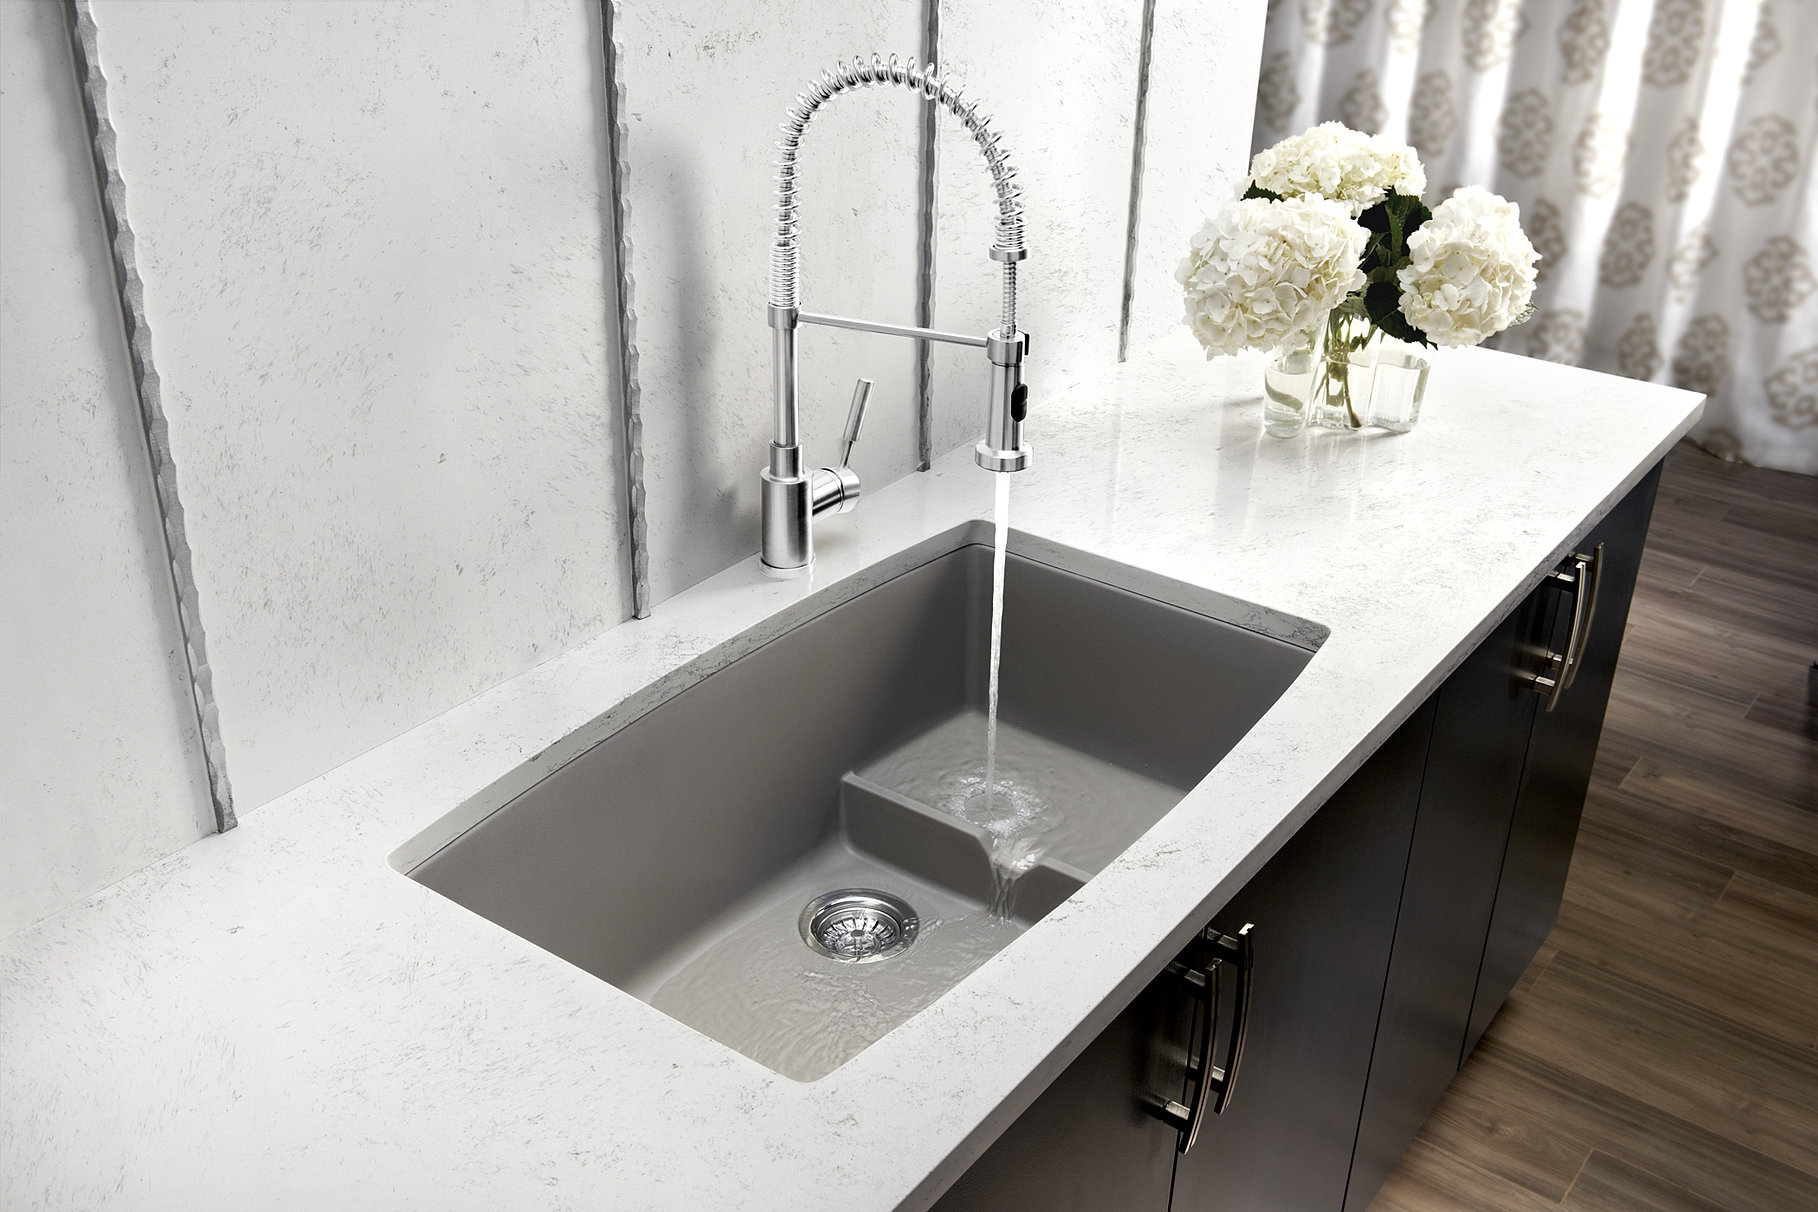 cabinet and vancouver porcelain best standing with uk other current full sinks commercial units back oakley of bampq steel cabinets used base sink stainless granite unit kitchen countertops for modernday size